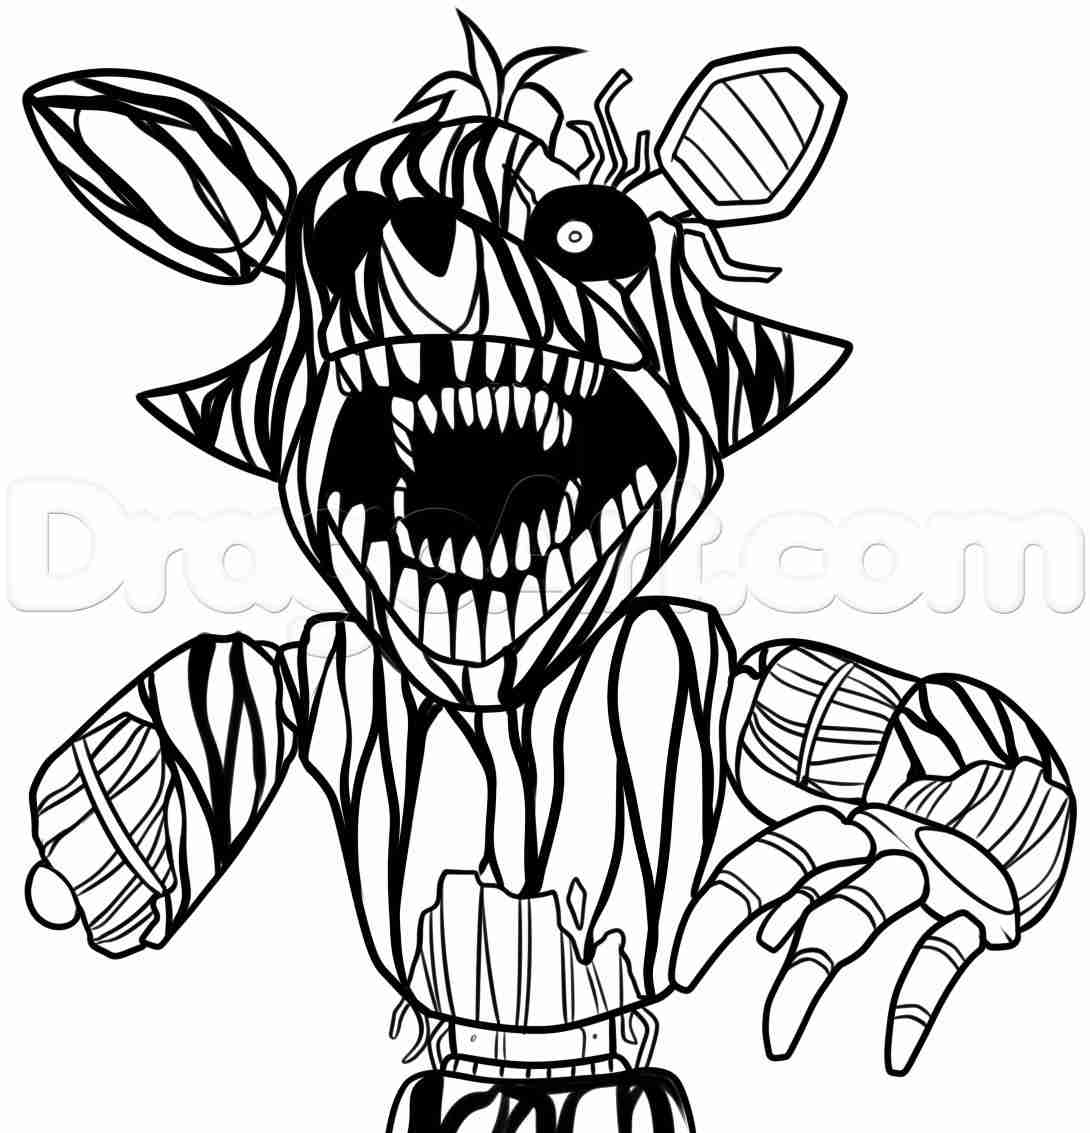 1090x1133 Five Nights At Freddys Fnaf Bonnie Foxy Mangle Coloring Pages